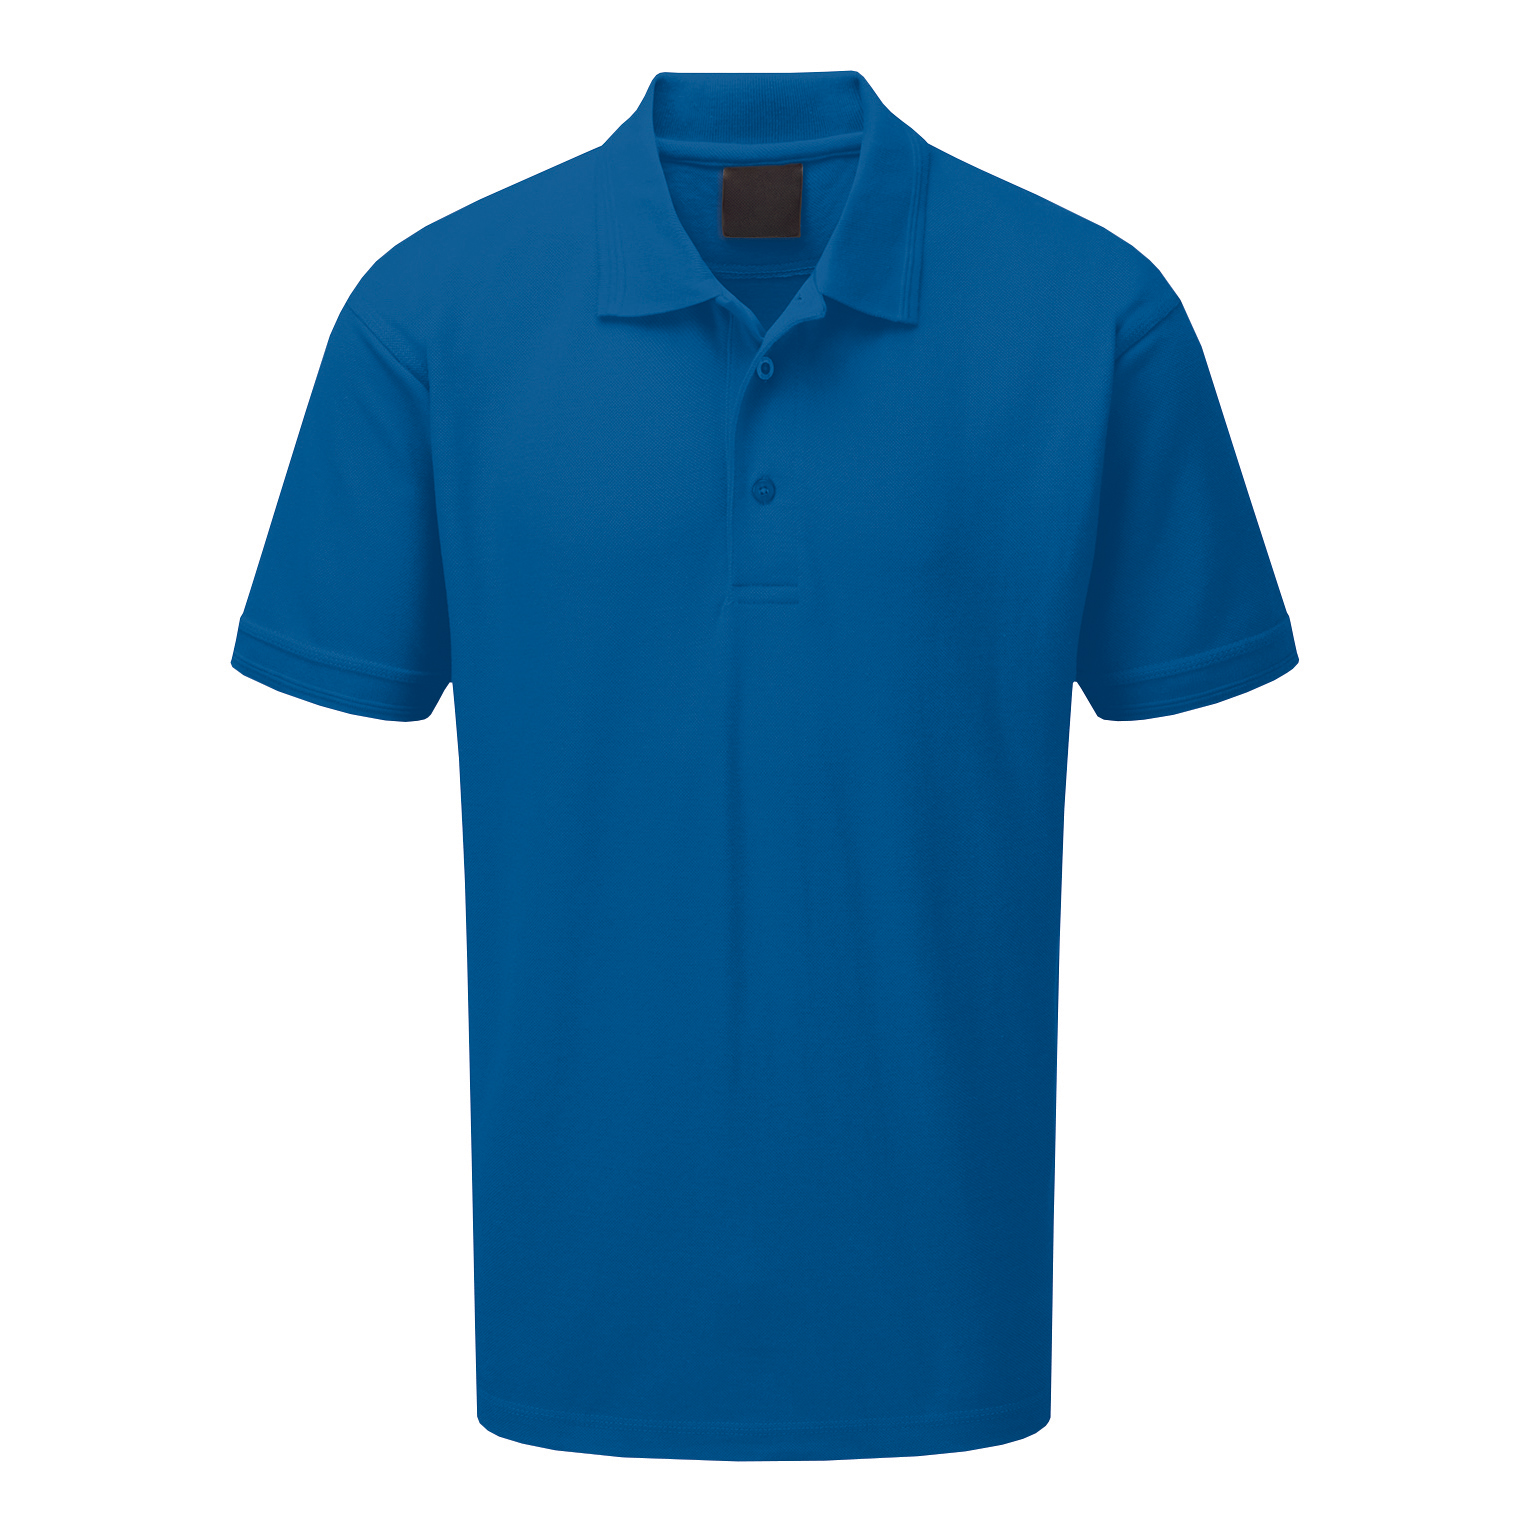 Click Workwear Polo Shirt Polycotton 200gsm Medium Royal Blue Ref CLPKSRM *Approx 3 Day Leadtime*